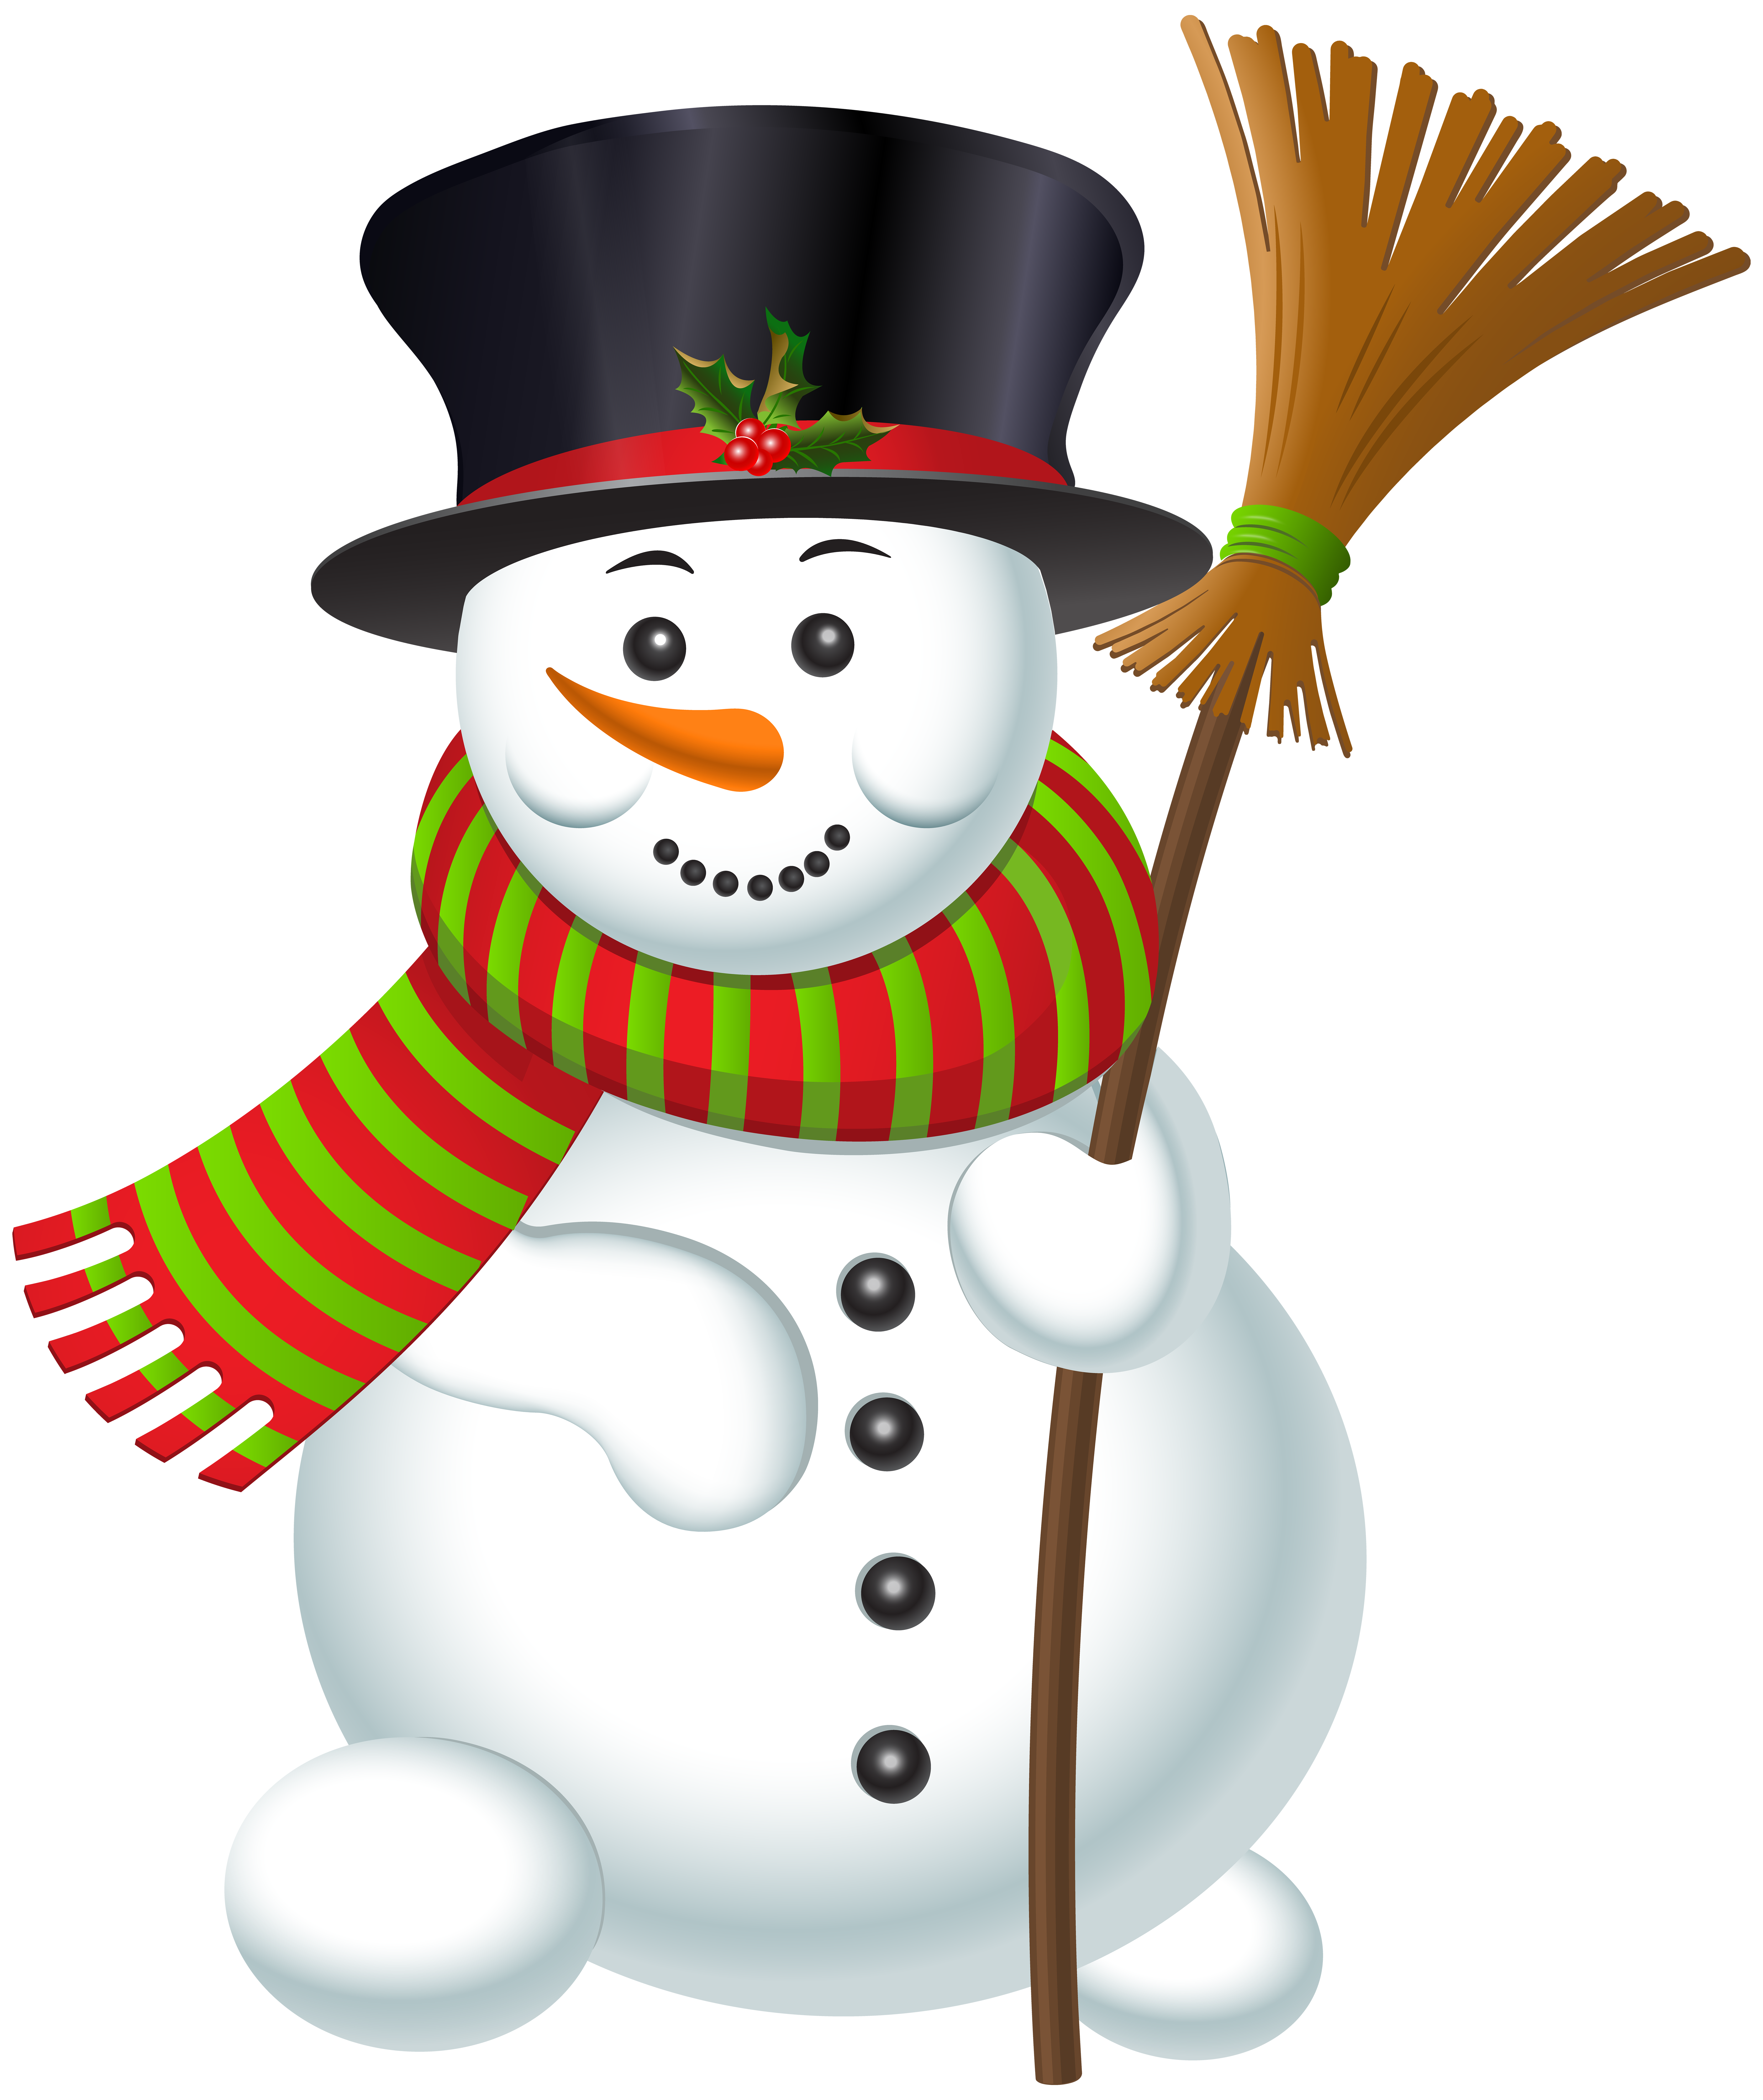 Snowman clipart in sun banner free download Cute Snowman PNG Clip Art Image | Gallery Yopriceville - High ... banner free download